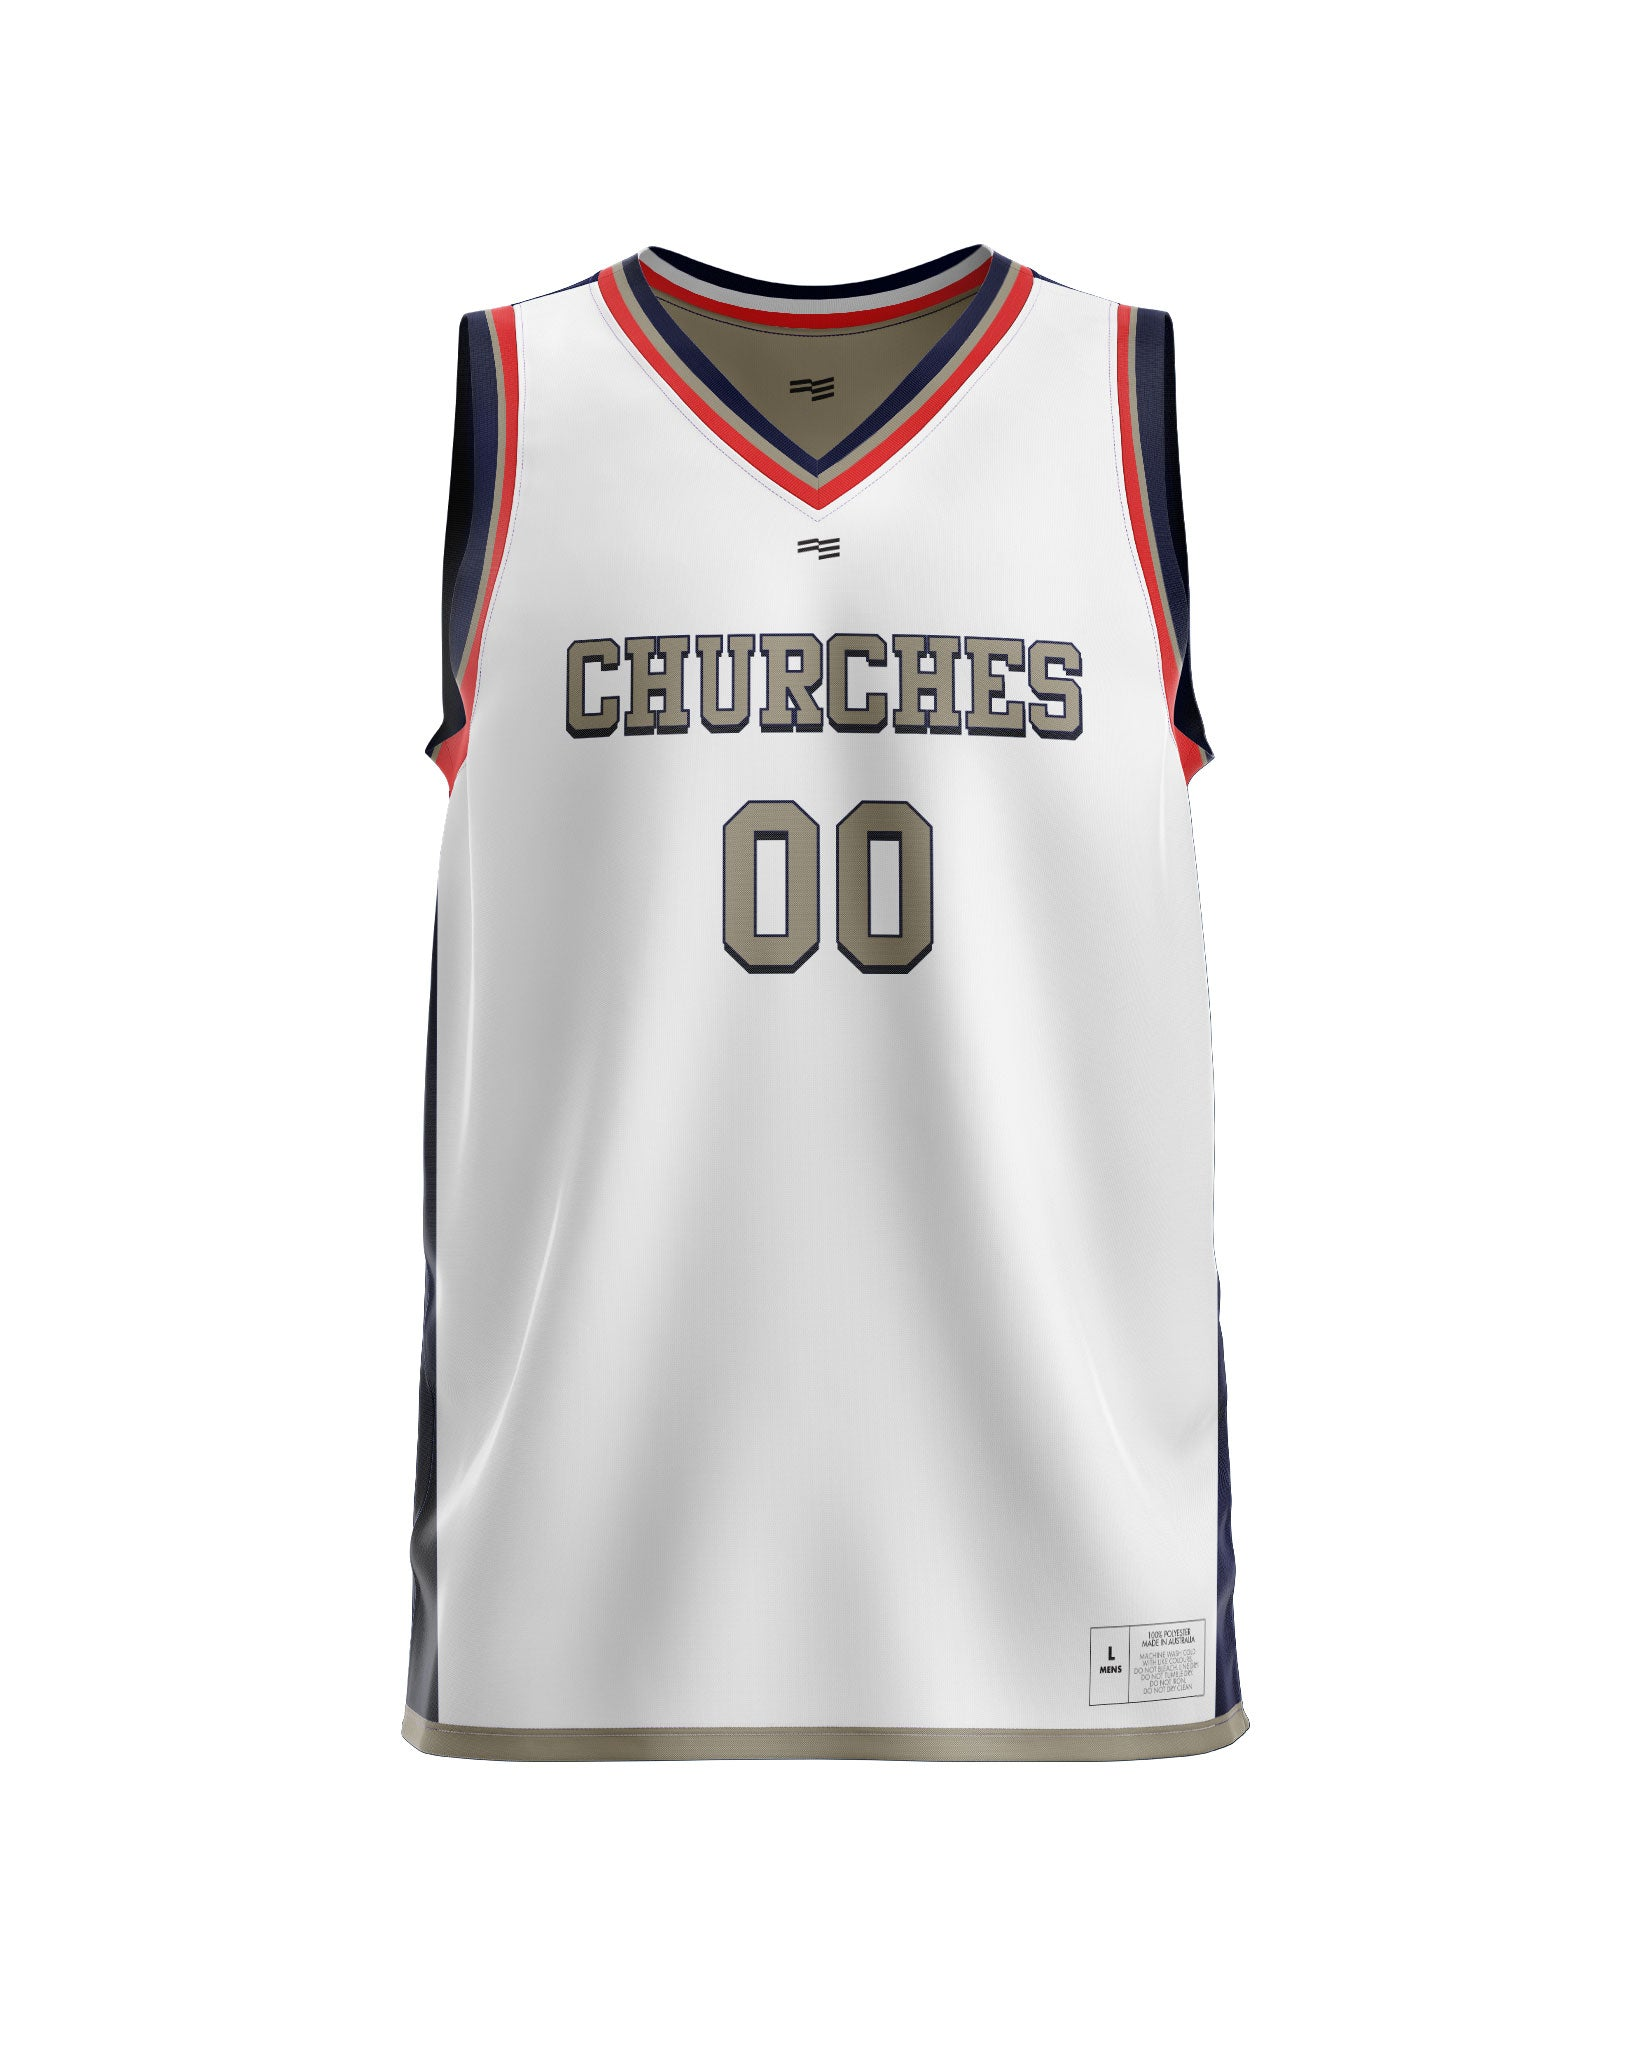 Churches Reversible Jersey - Mens